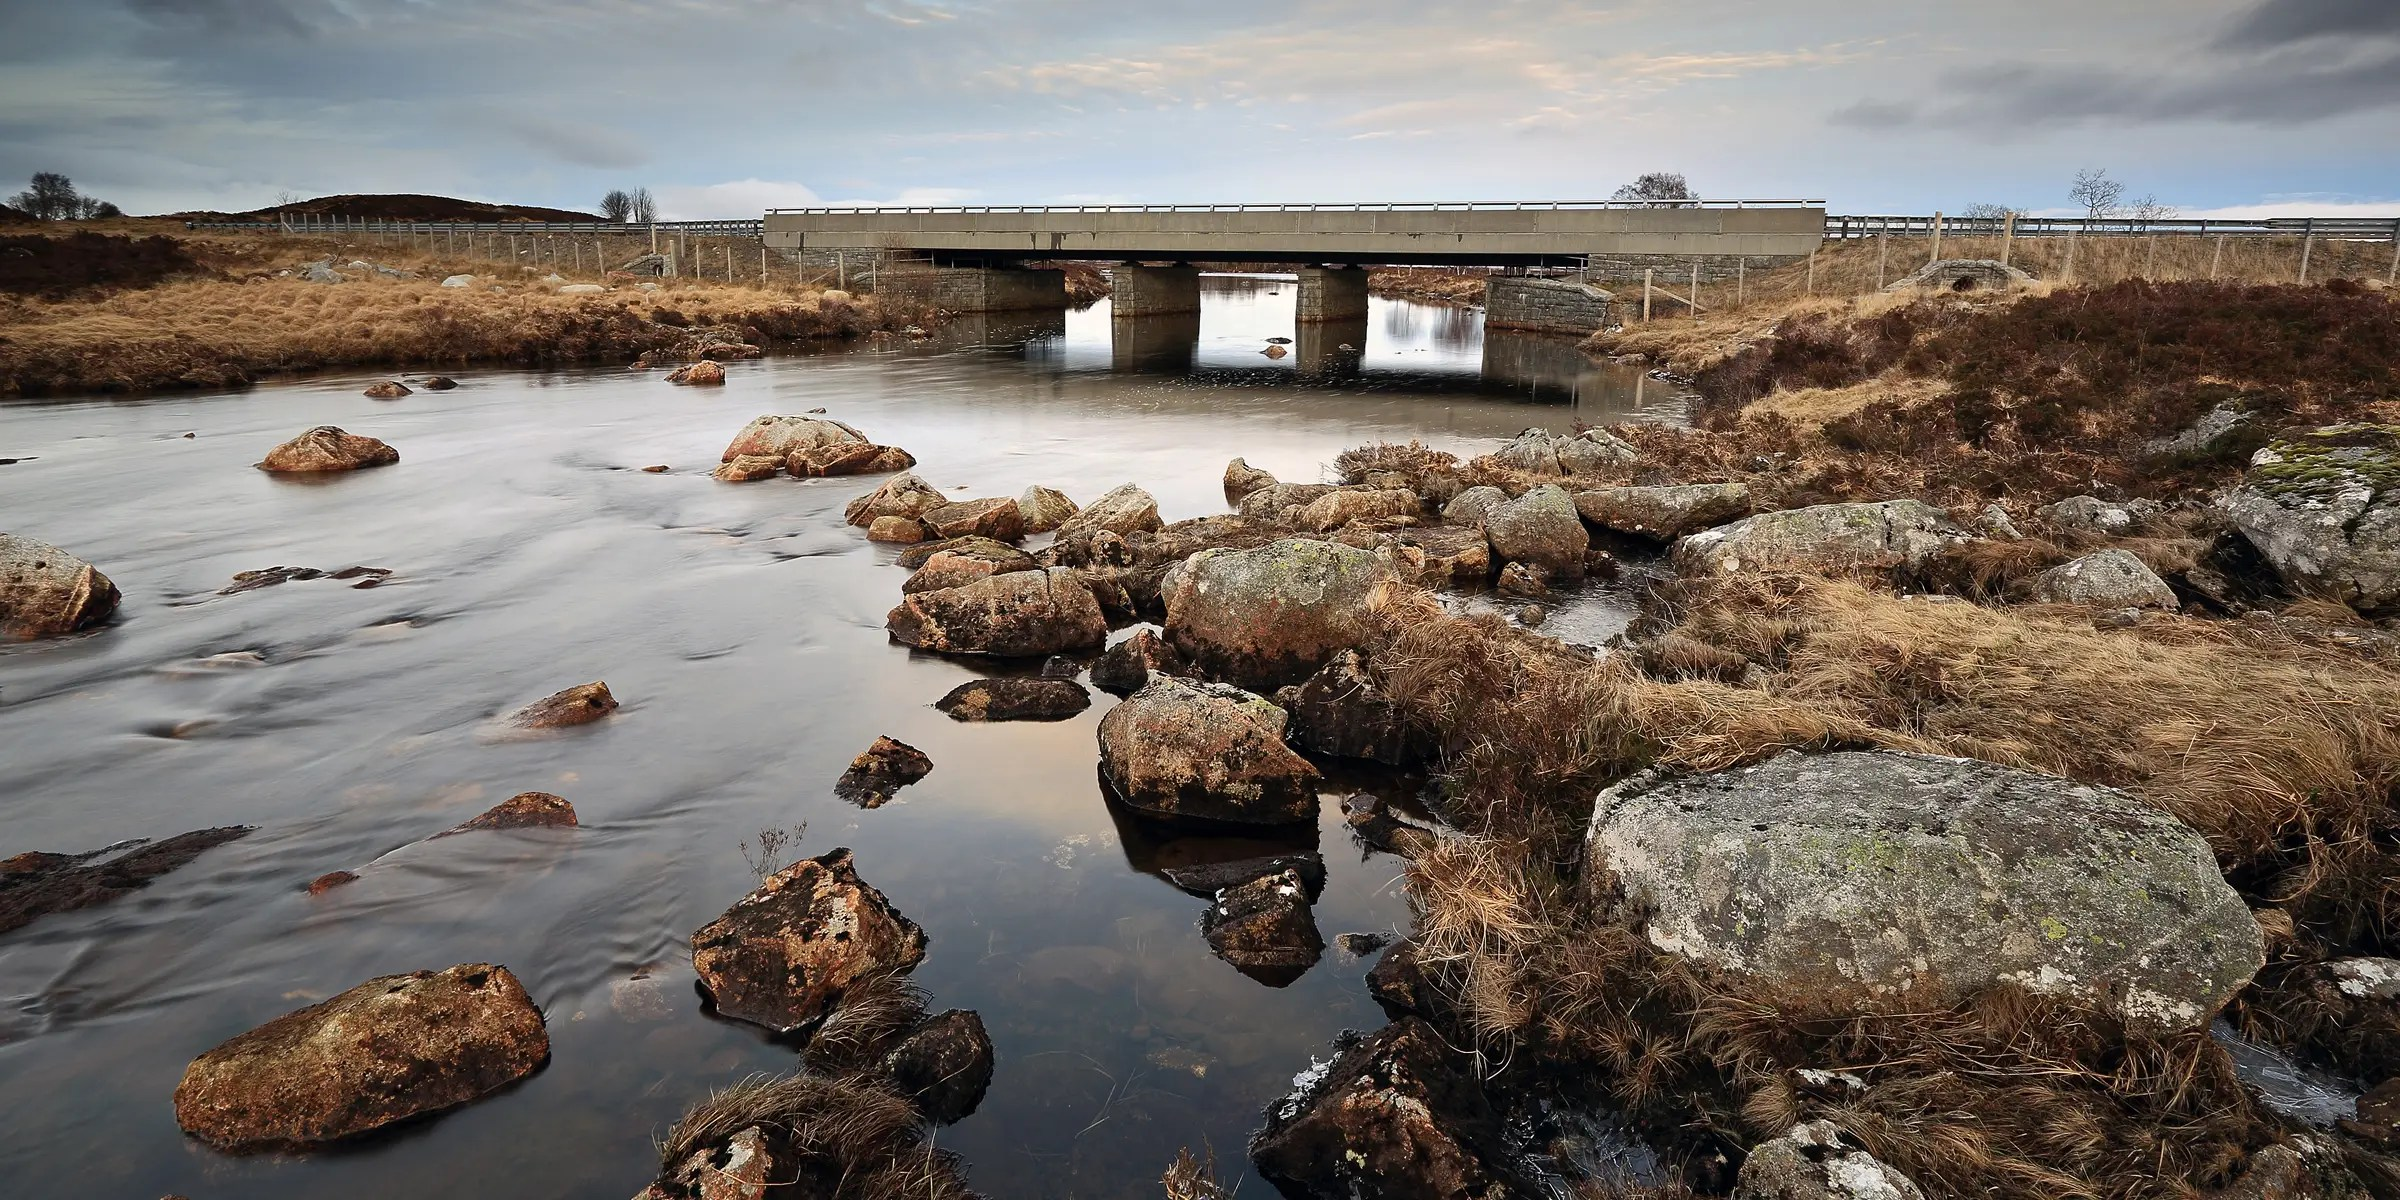 The long, remote A82 Road in Glencoe, Scotland, brings you breathtaking scenic spaces and wonderful sights like the Rannoch Moor Bridge.